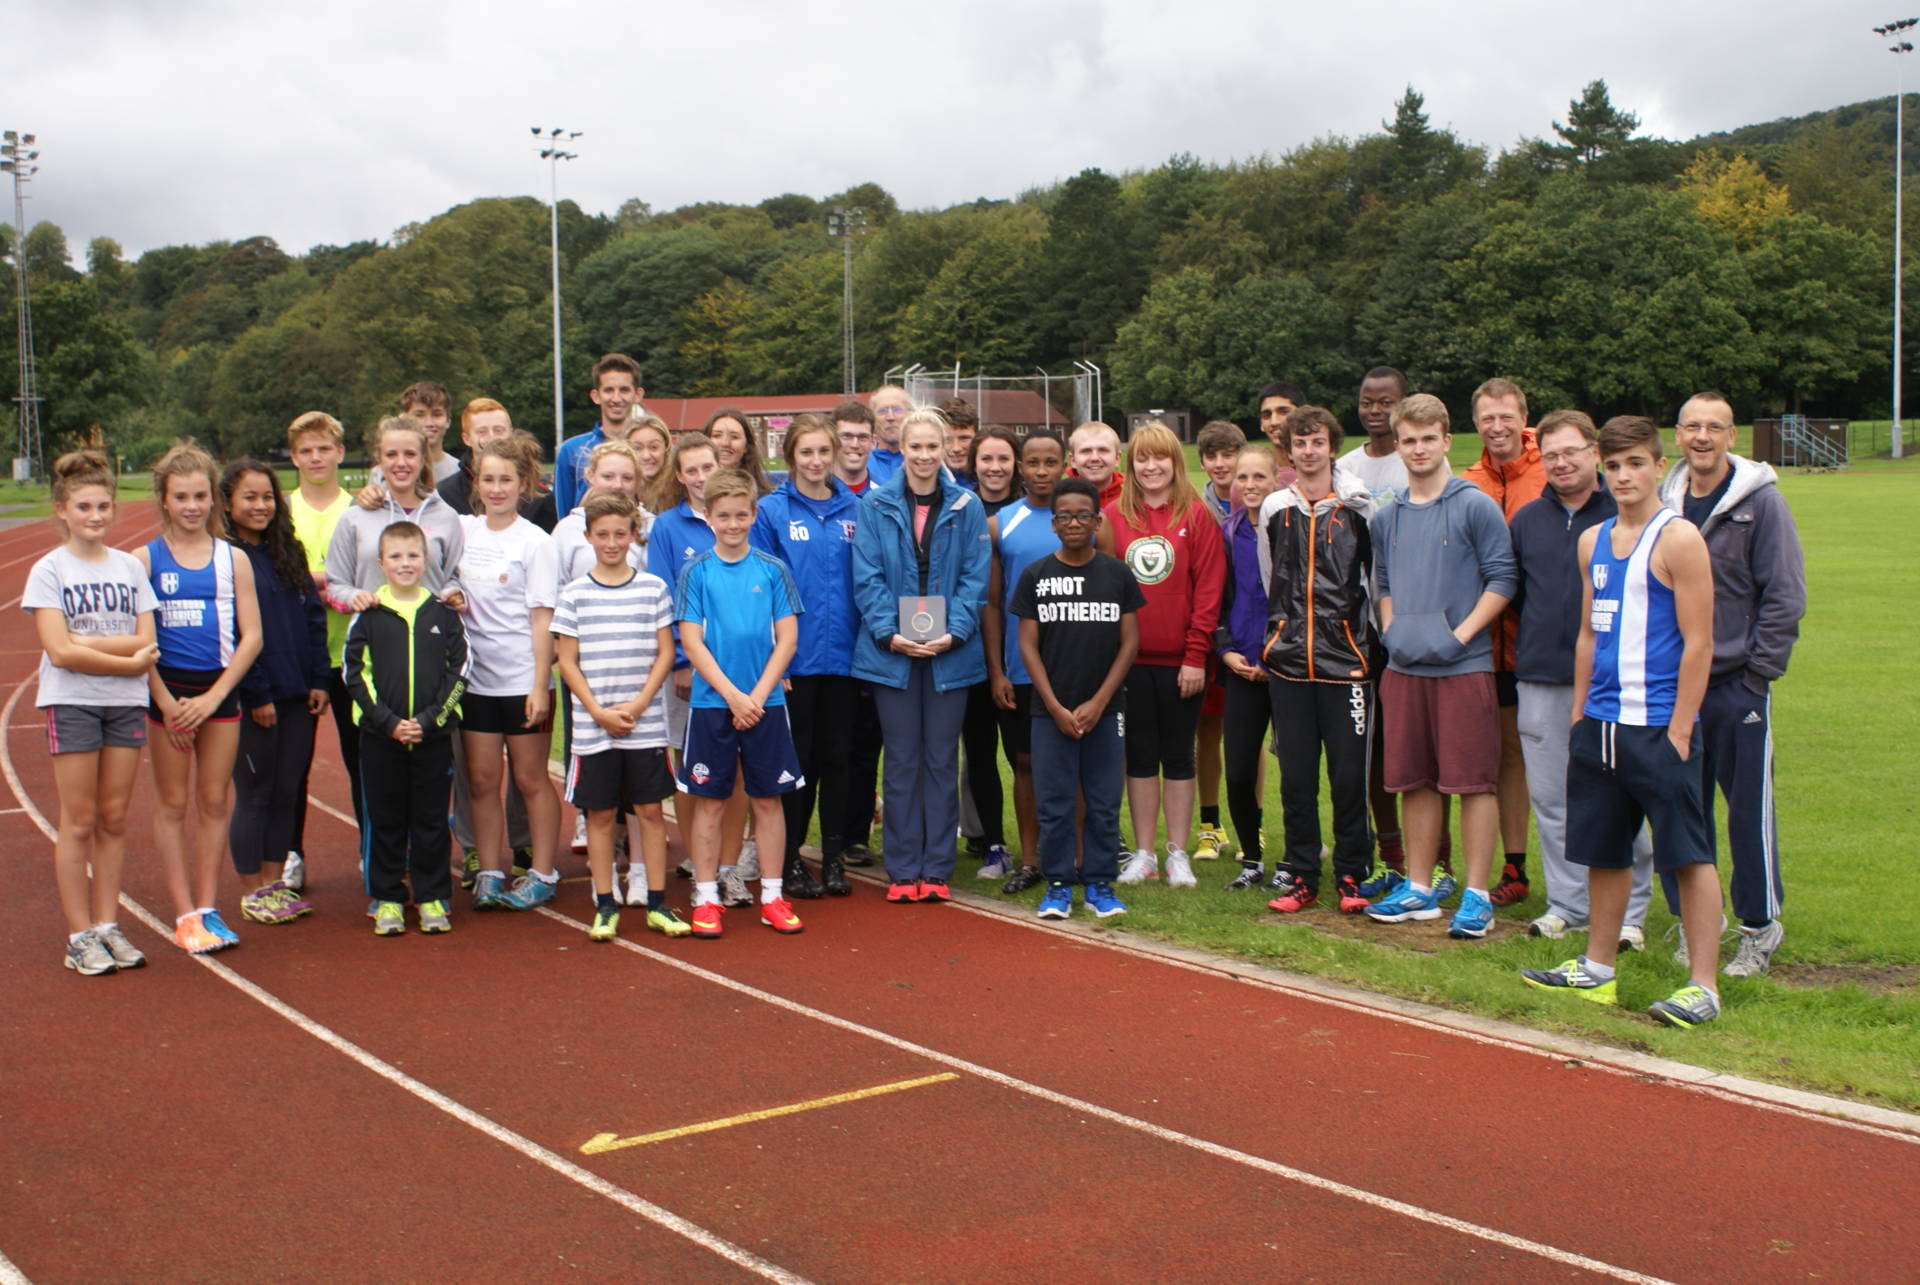 Harriers welcome Sophie Hitchon with her Commonwealth Games Bronze Medal